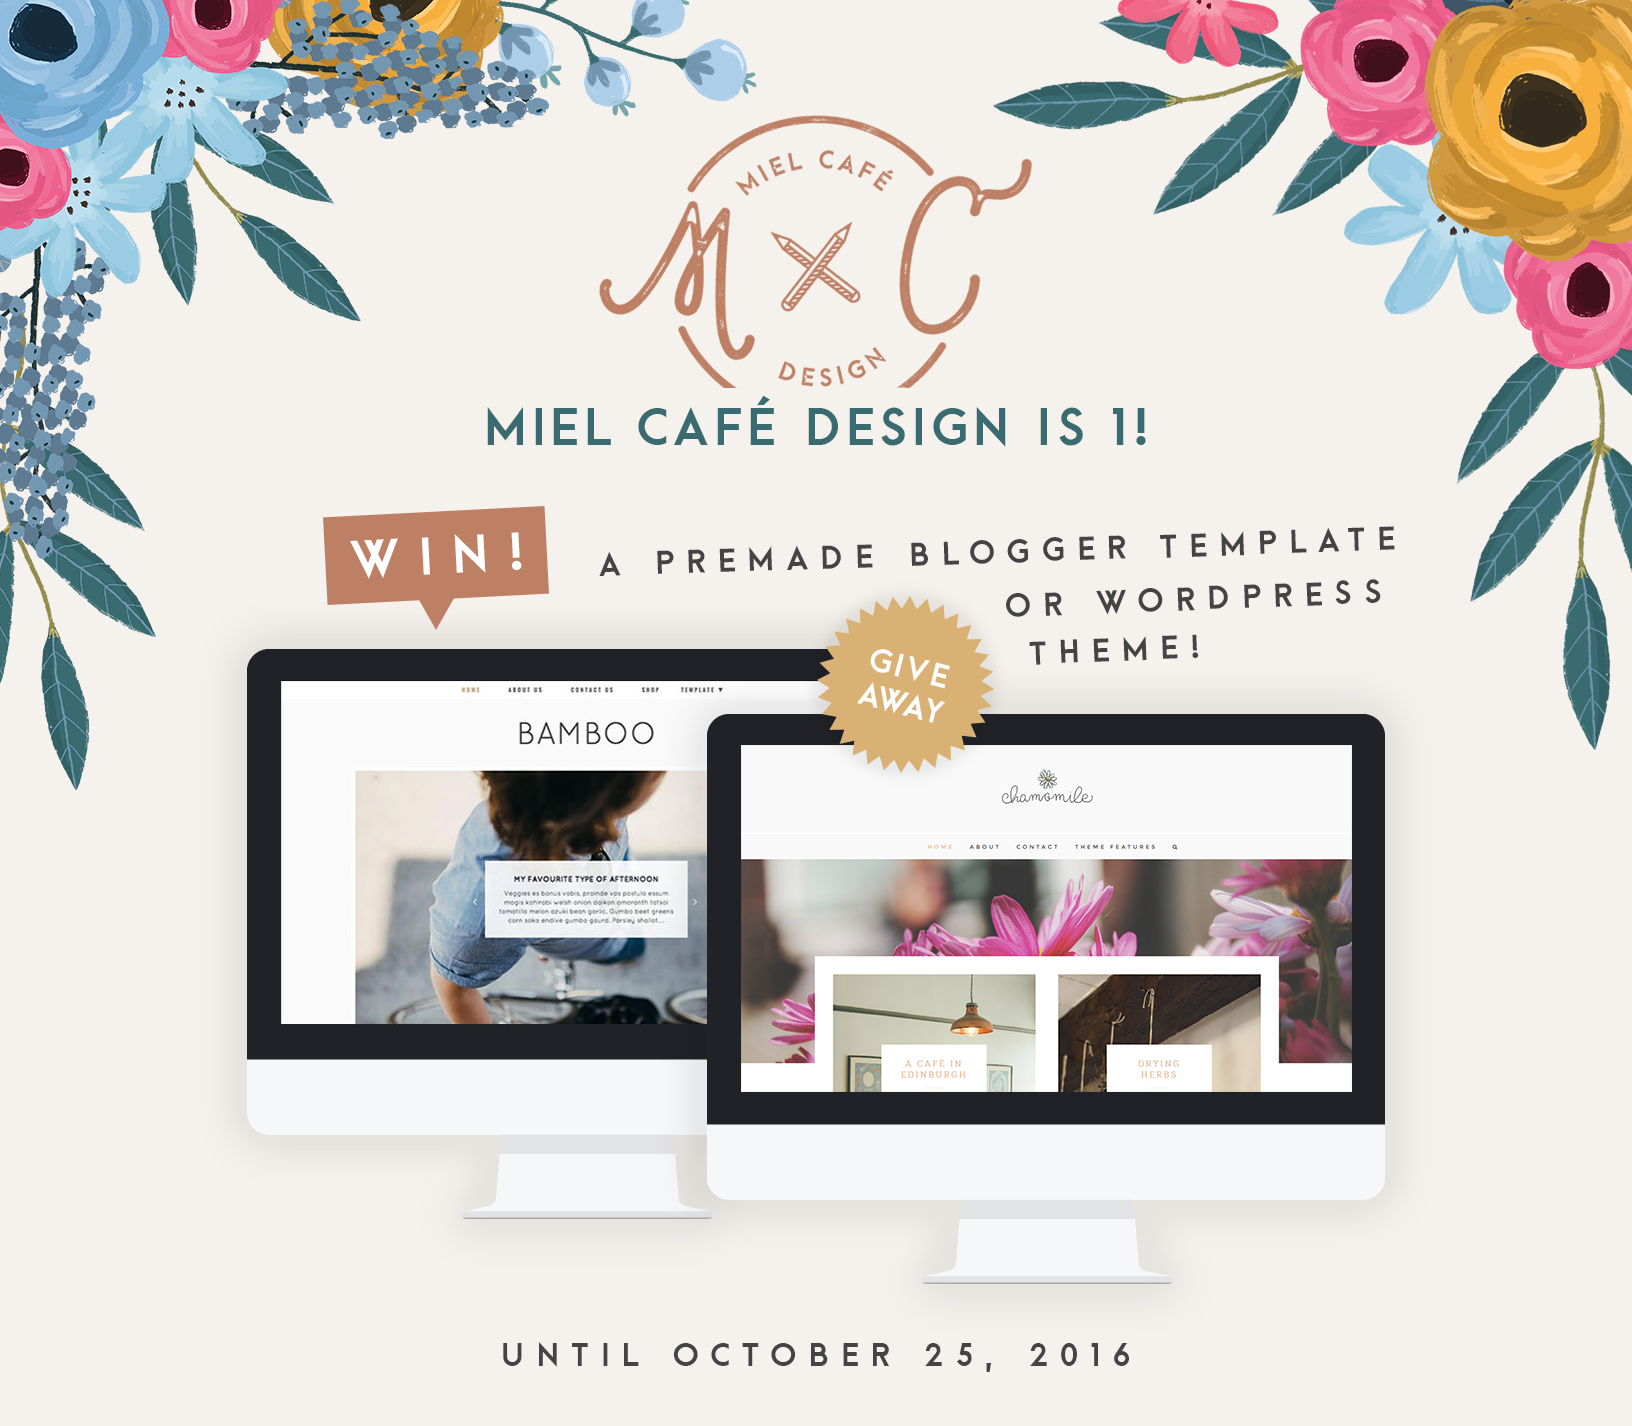 Miel Café Design First Birthday Giveaway!